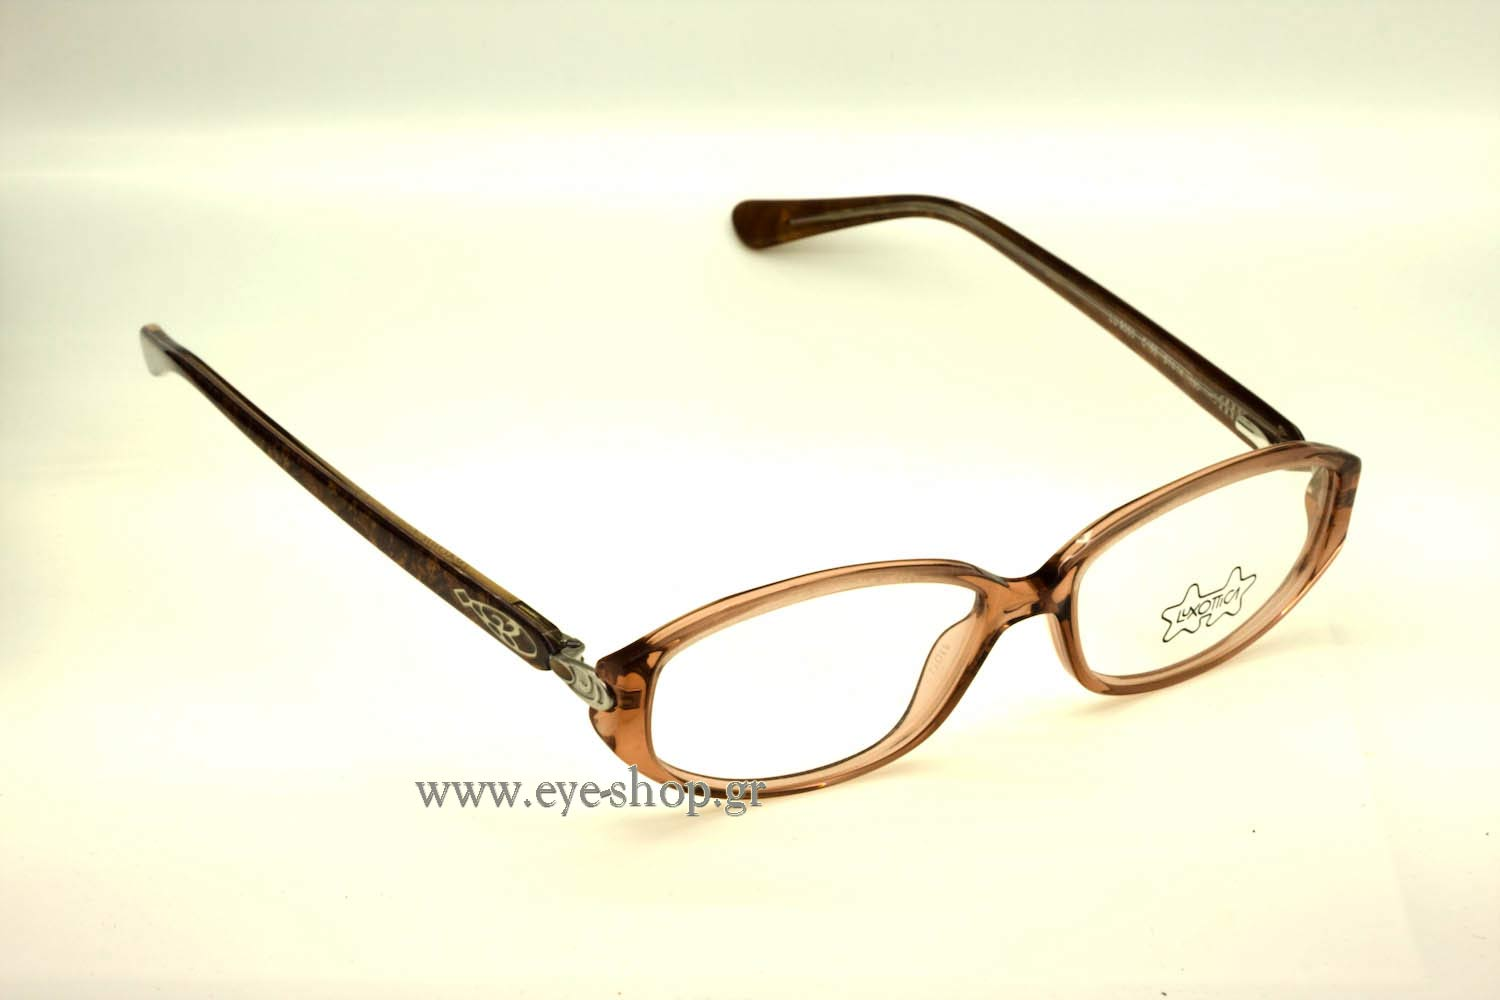 Eyeglass Frames Not Made By Luxottica : EYEWEAR LUXOTTICA 9060 C186 51? Women 2017 ver1.